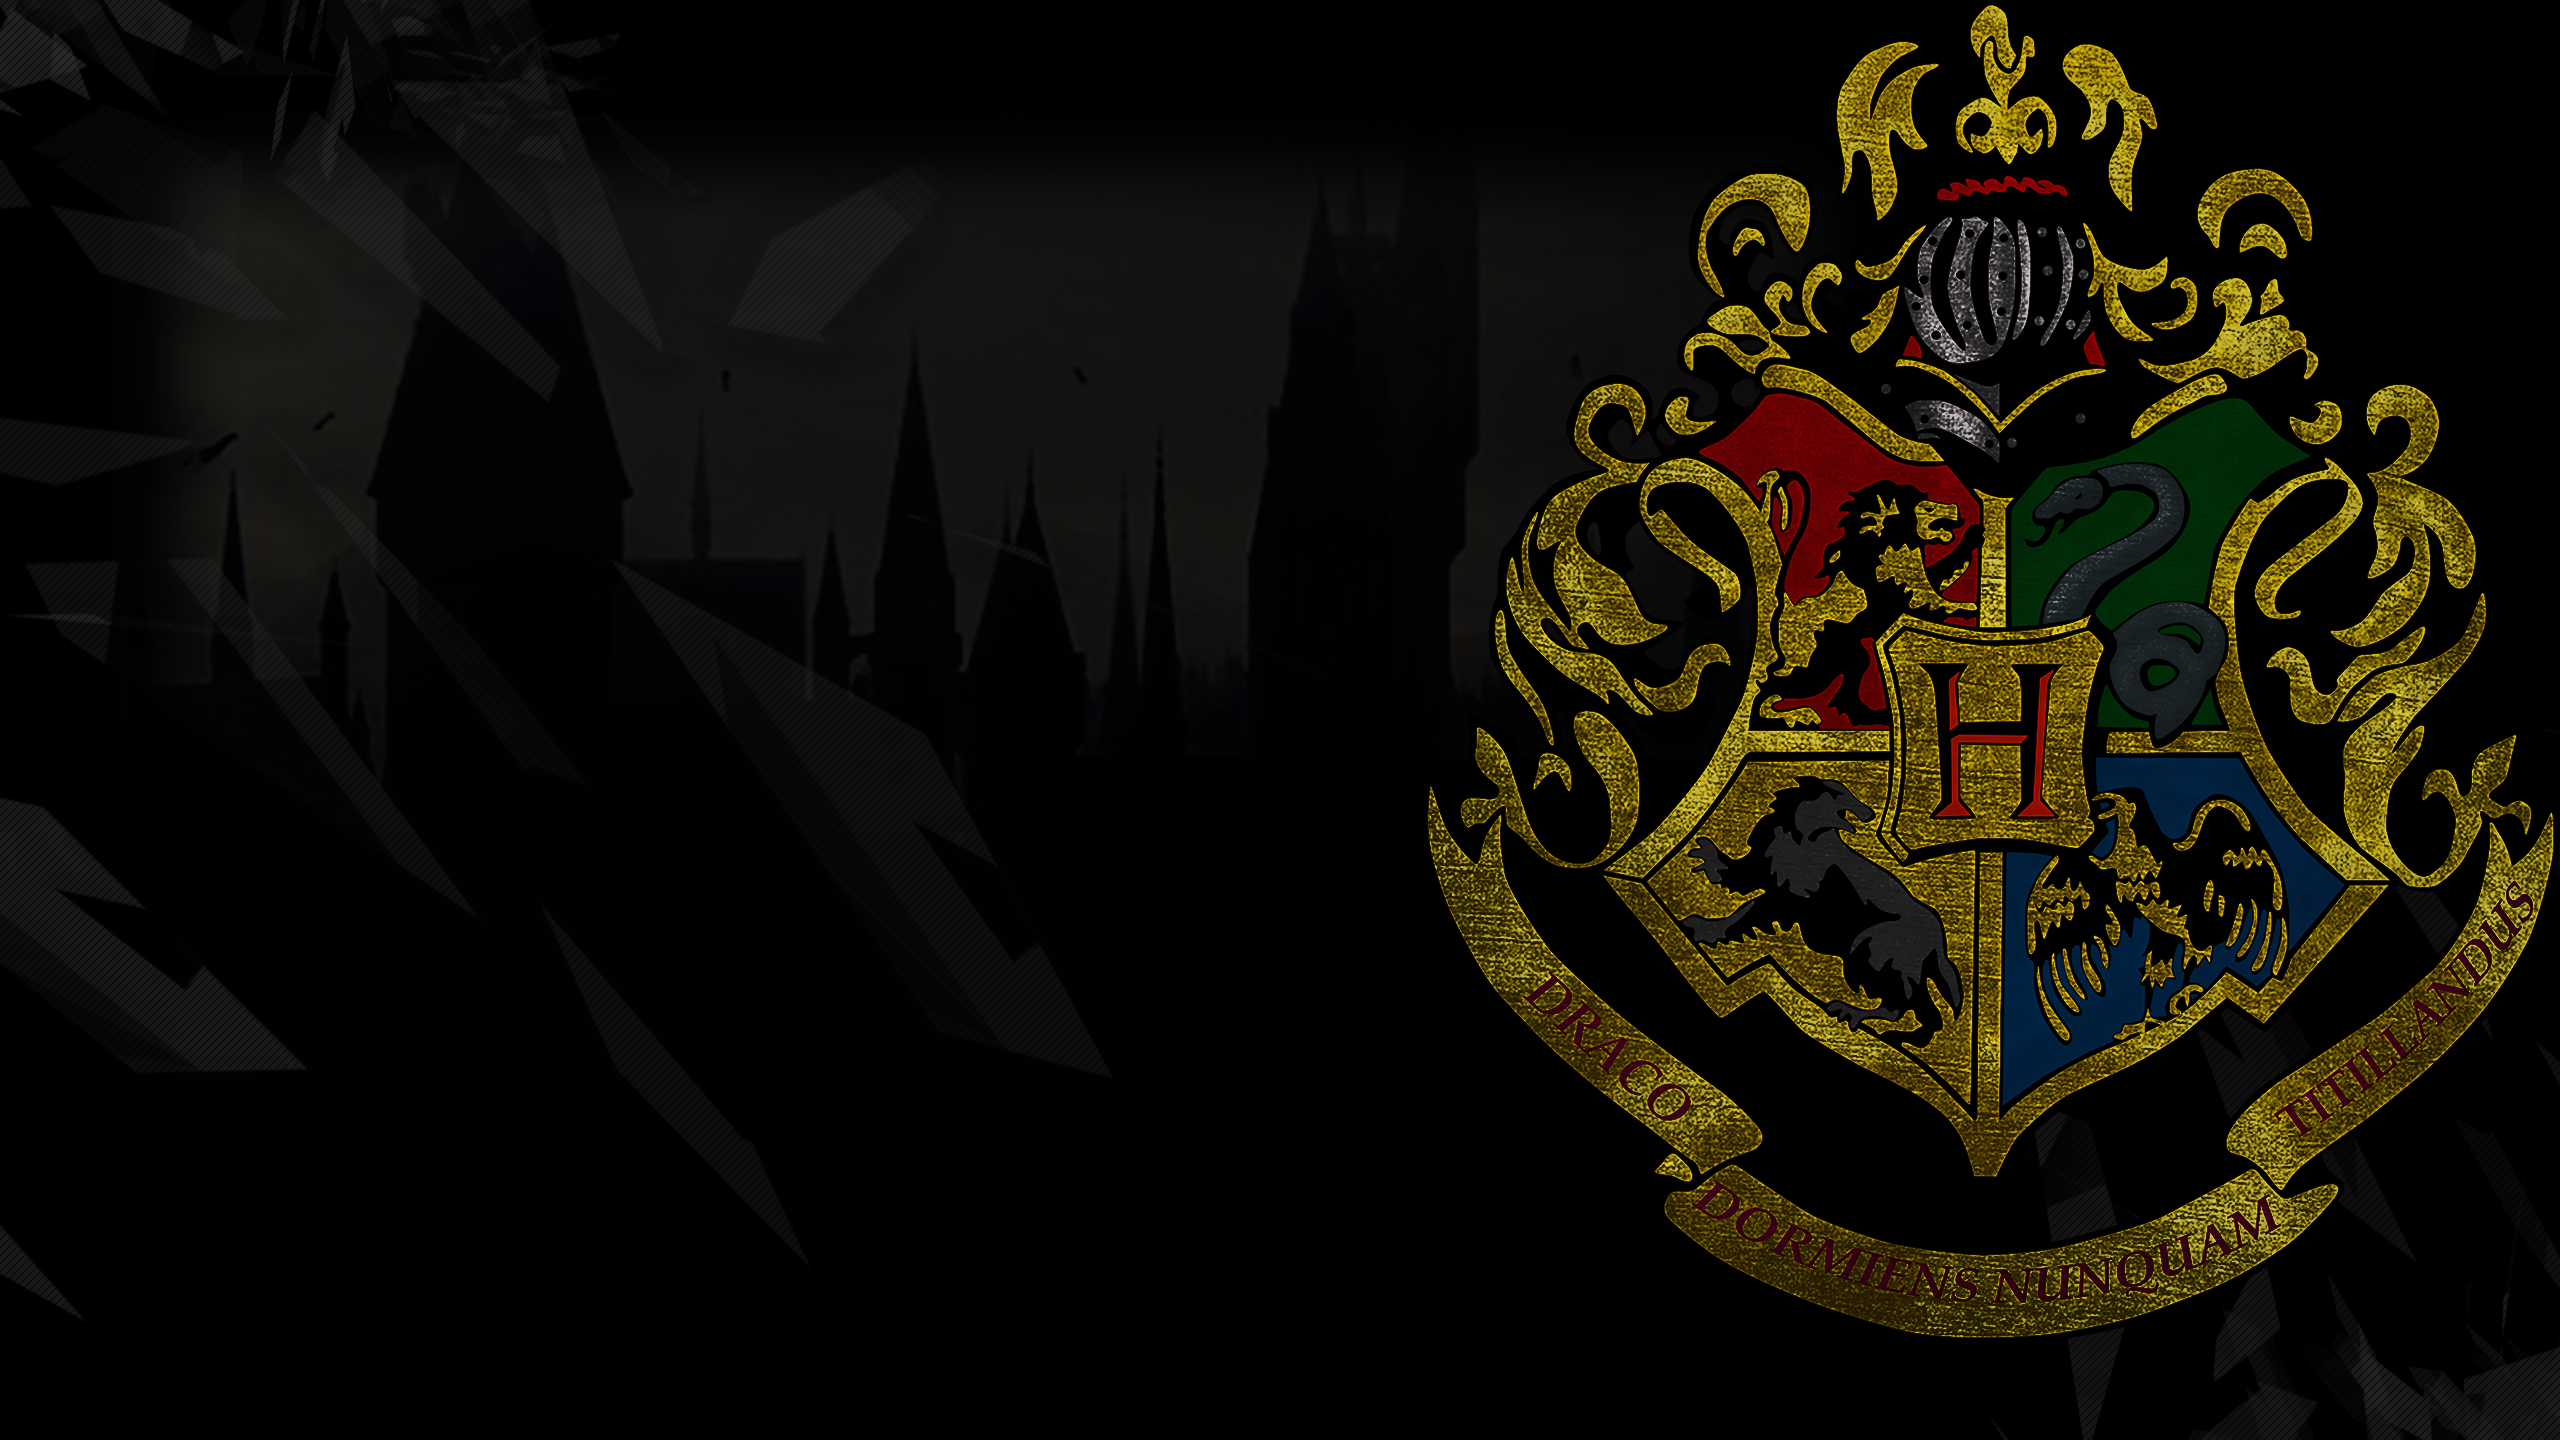 houses of hogwarts wallpaper computer wallpapers desktop